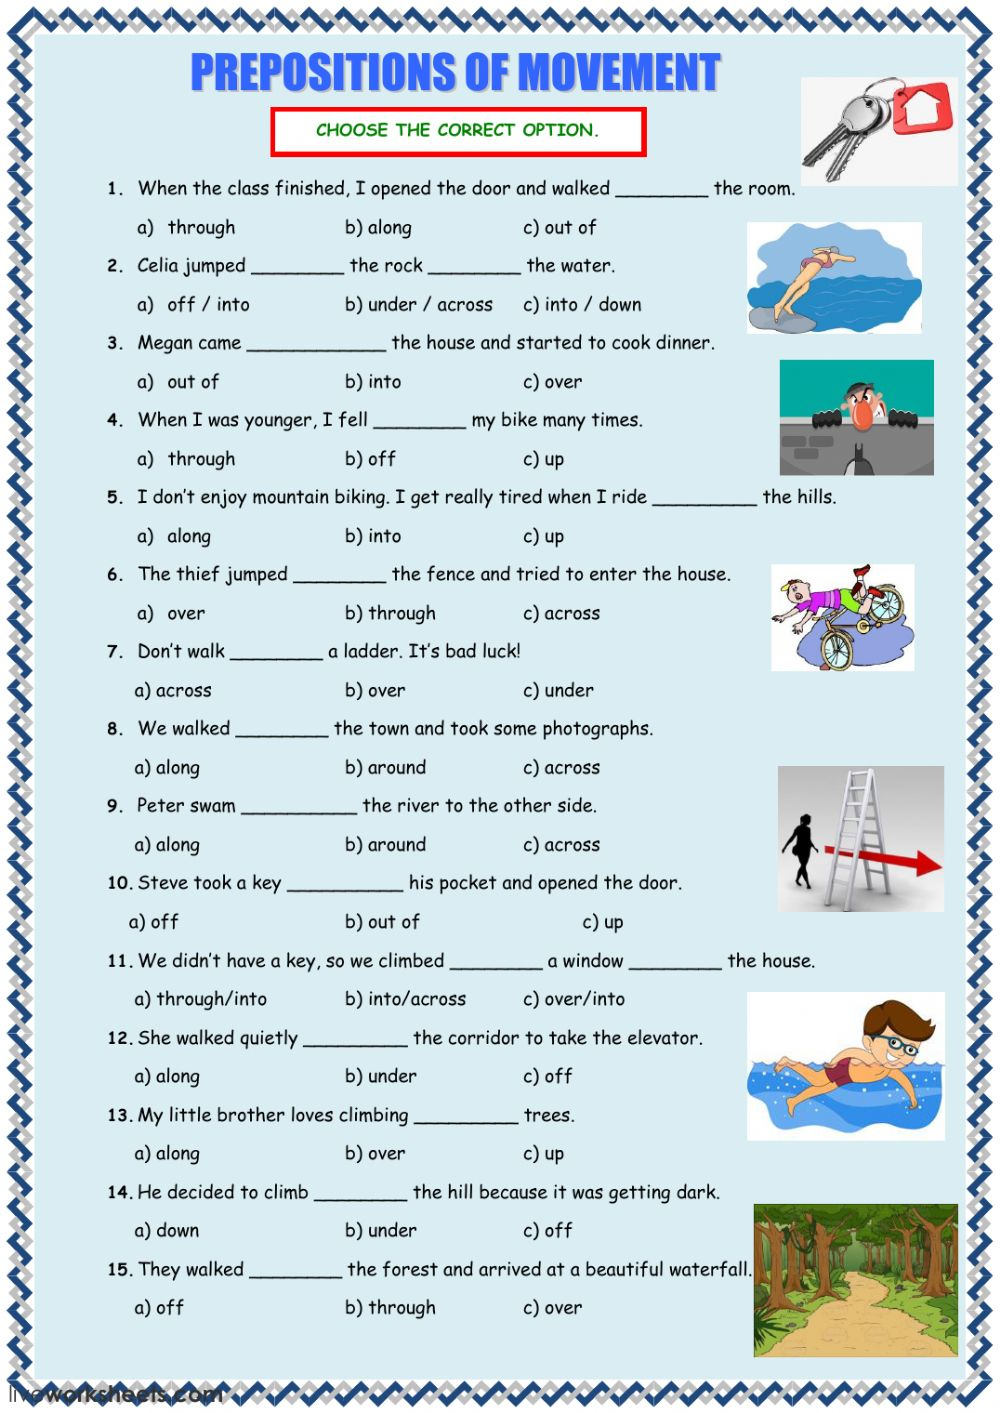 Prepositions Of Movement Interactive Worksheet